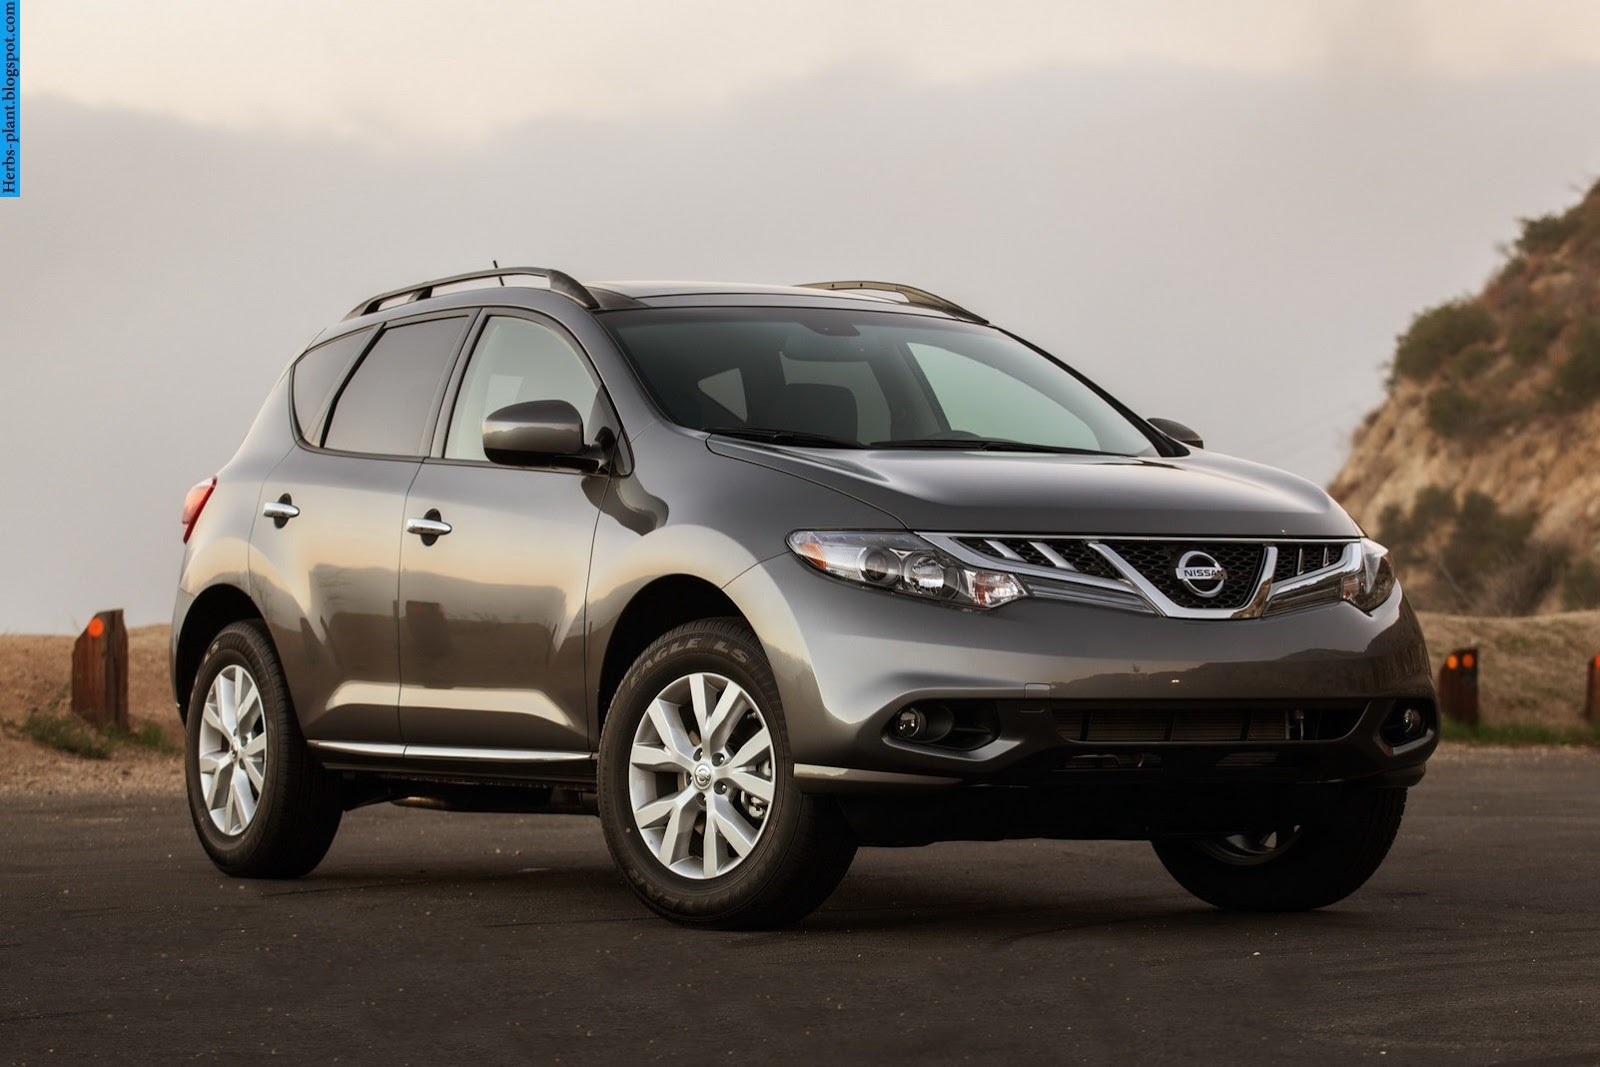 Nissan murano car 2013 front view - صور سيارة نيسان مورانو 2013 من الخارج